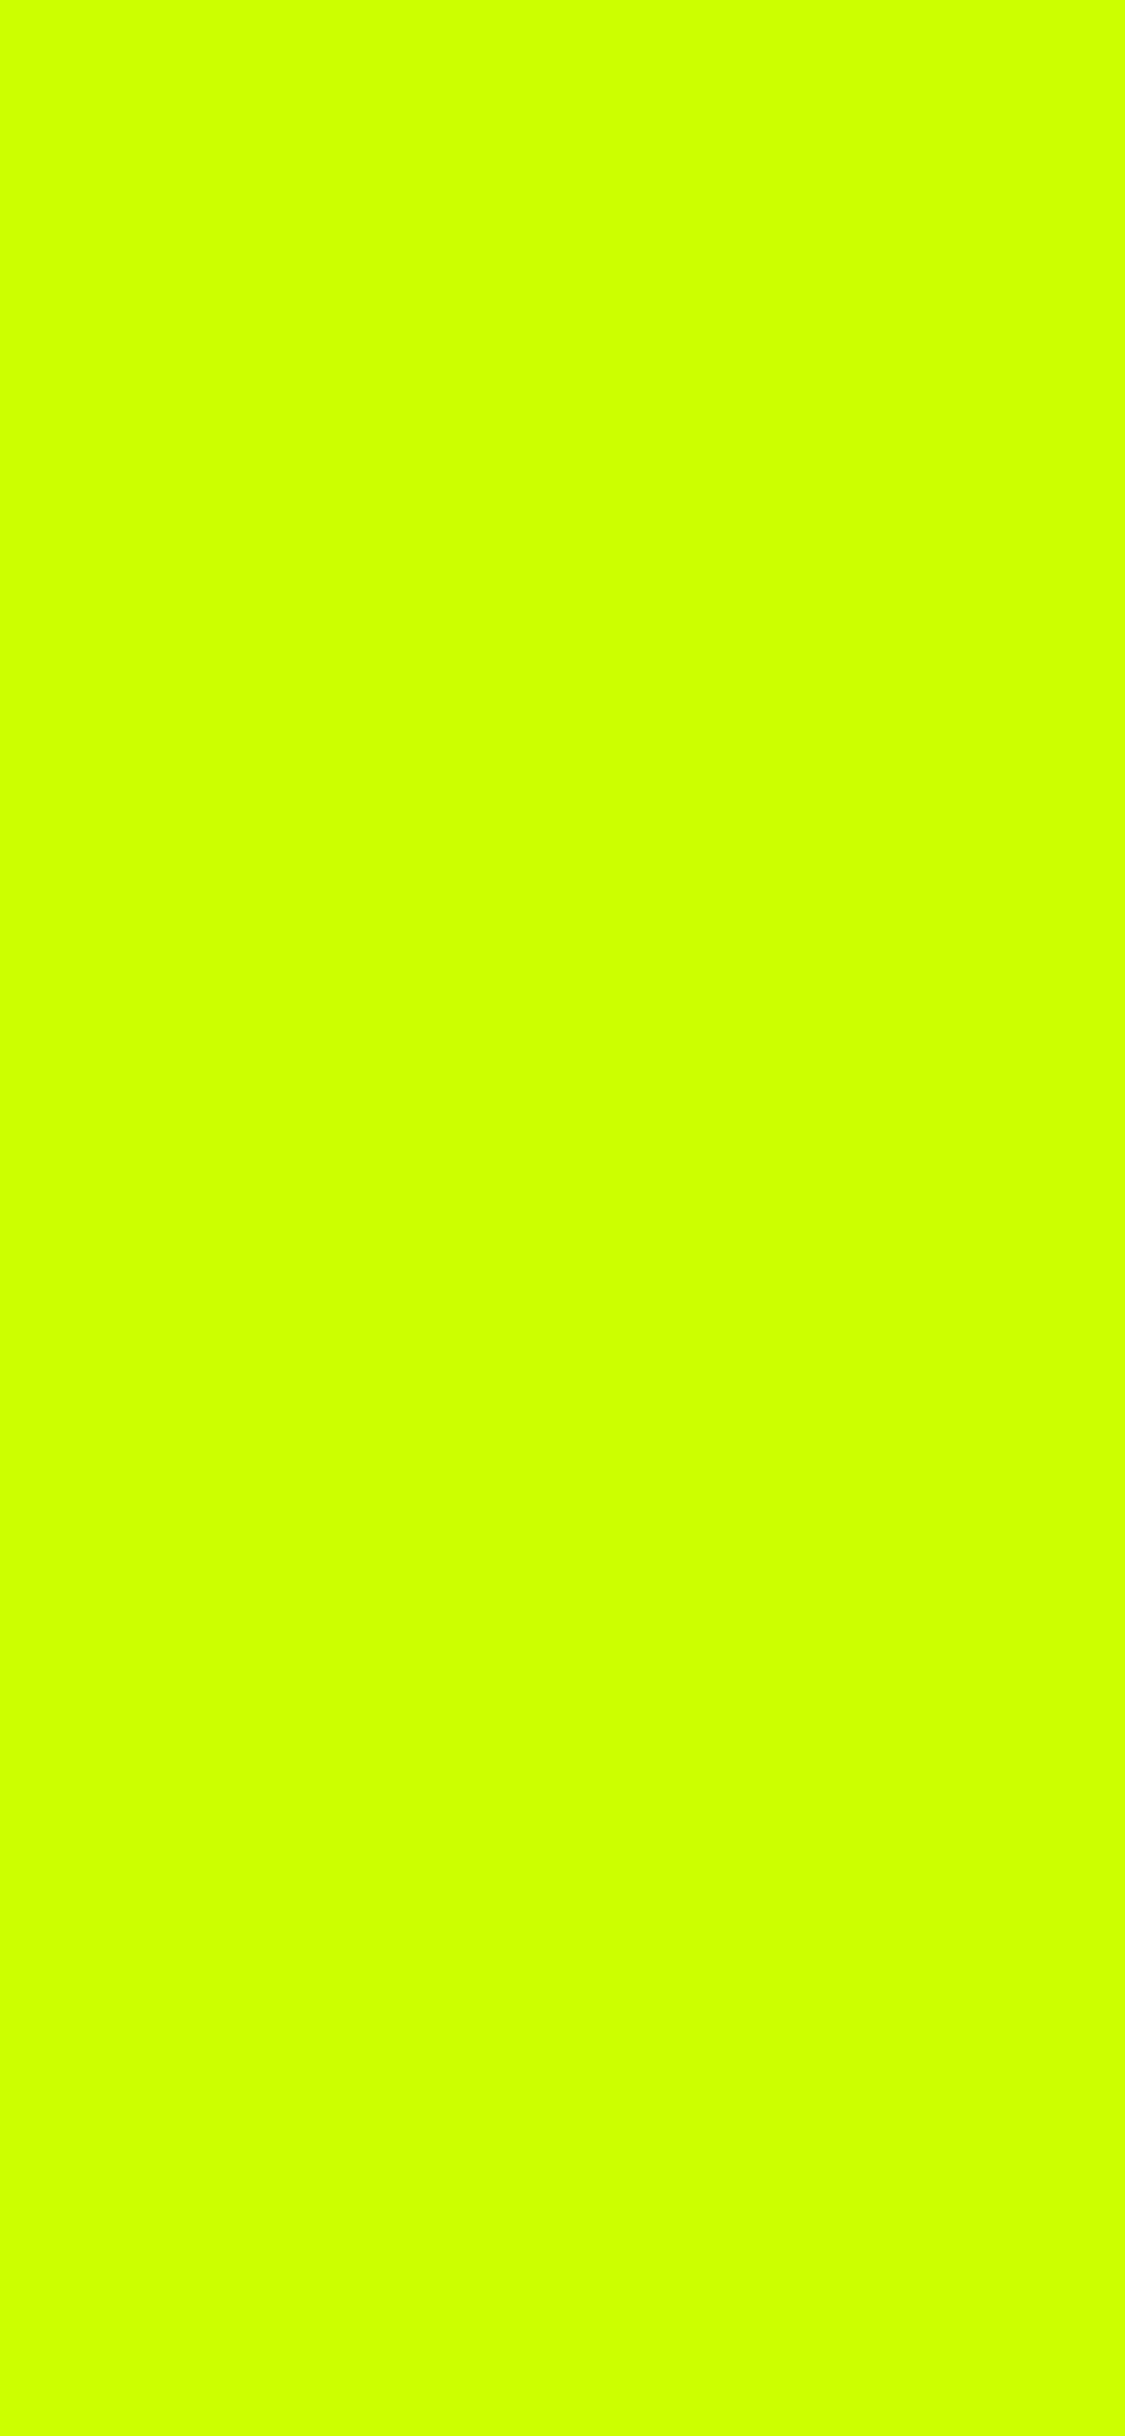 1125x2436 Electric Lime Solid Color Background